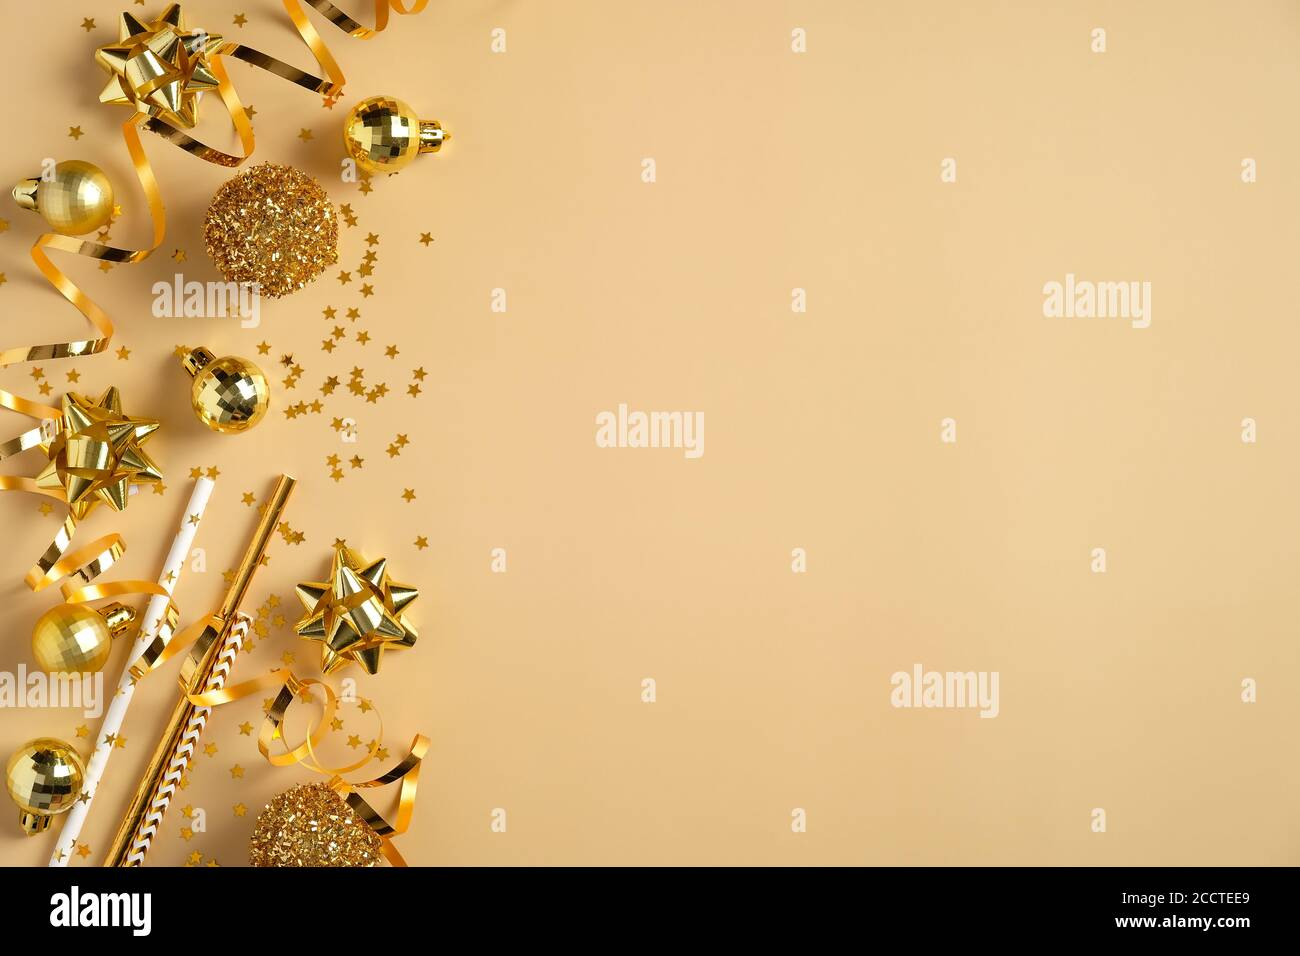 https www alamy com christmas party invitation card mockup flat lay golden christmas balls decorations tinsel confetti on yellow background top view with copy space image369331825 html